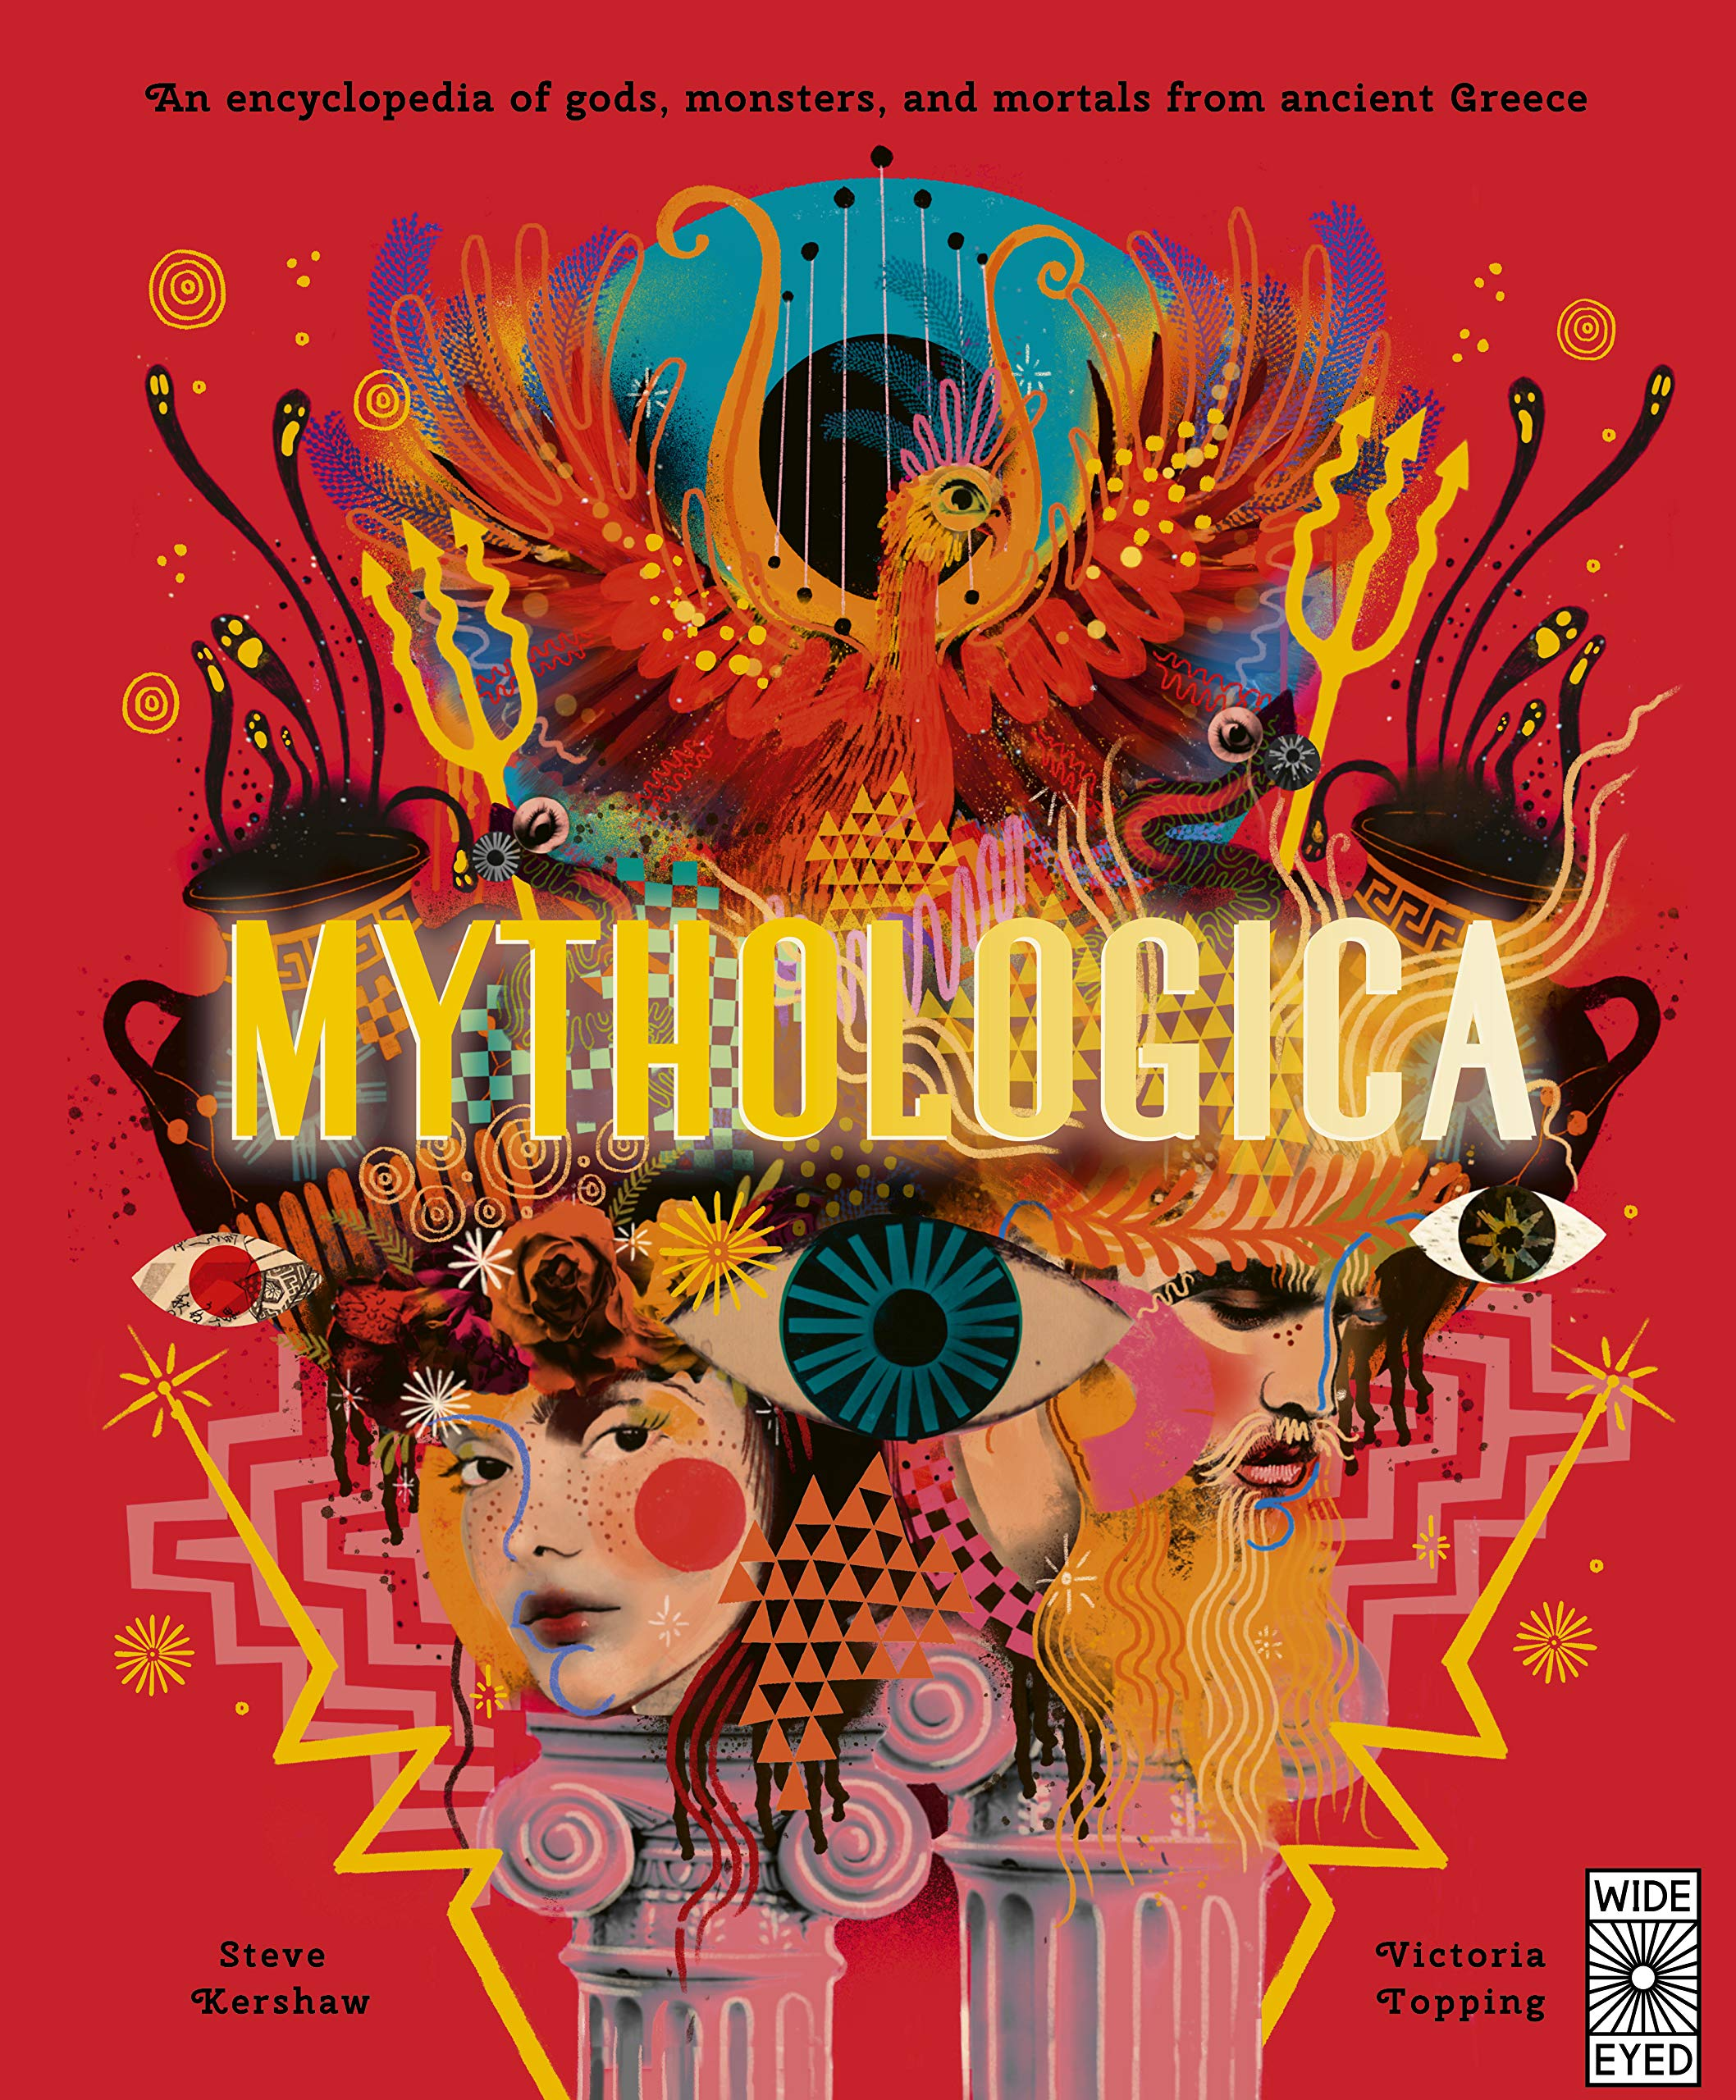 Mythologica: An encyclopedia of gods, monsters and mortals from ancient  Greek: Amazon.co.uk: Kershaw, Dr. Stephen P., Topping, Victoria:  9781786031921: Books